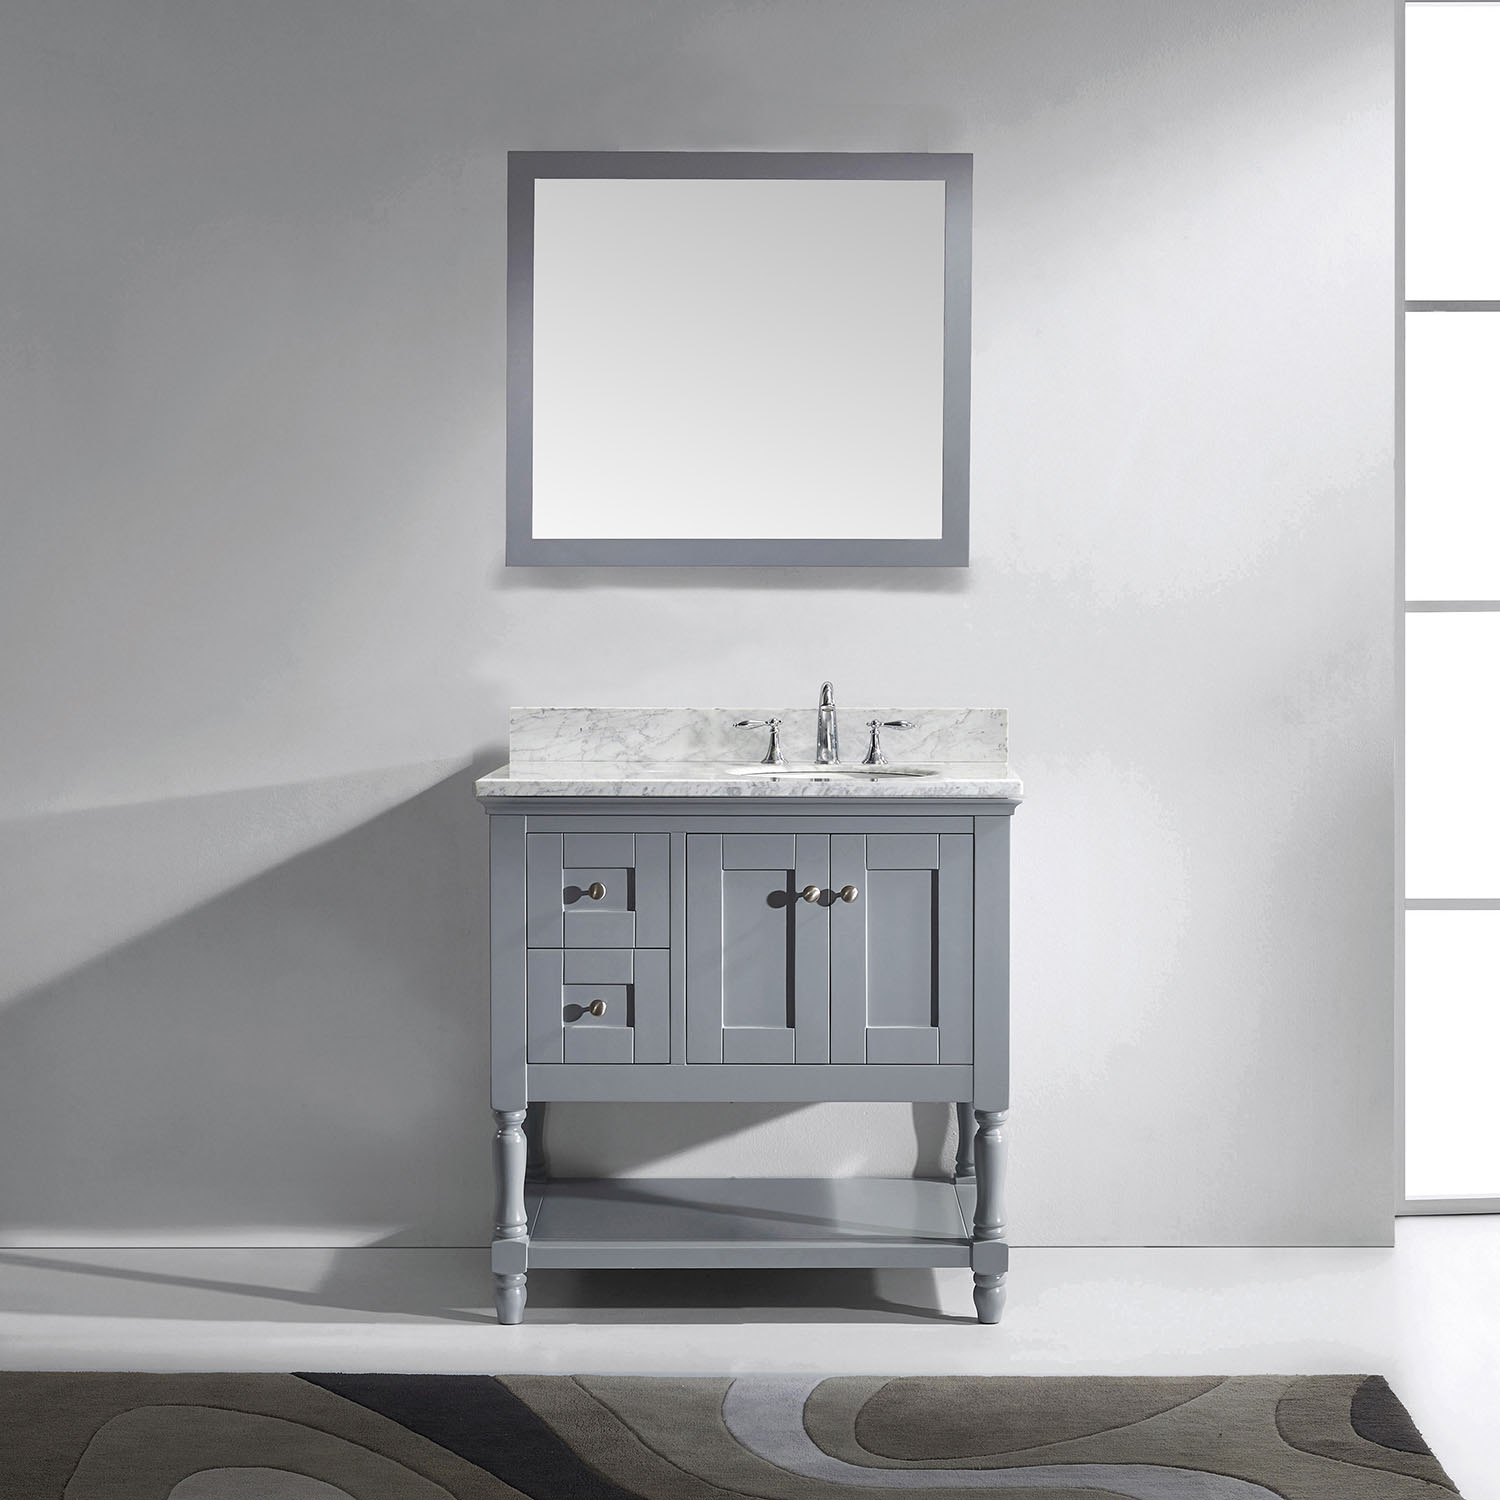 units corner product qs unit mix bathrooms supplies l sinks htm n cabinets match twyford handrinse vanity uk for basin cloakrooms furniture grey bathroom and